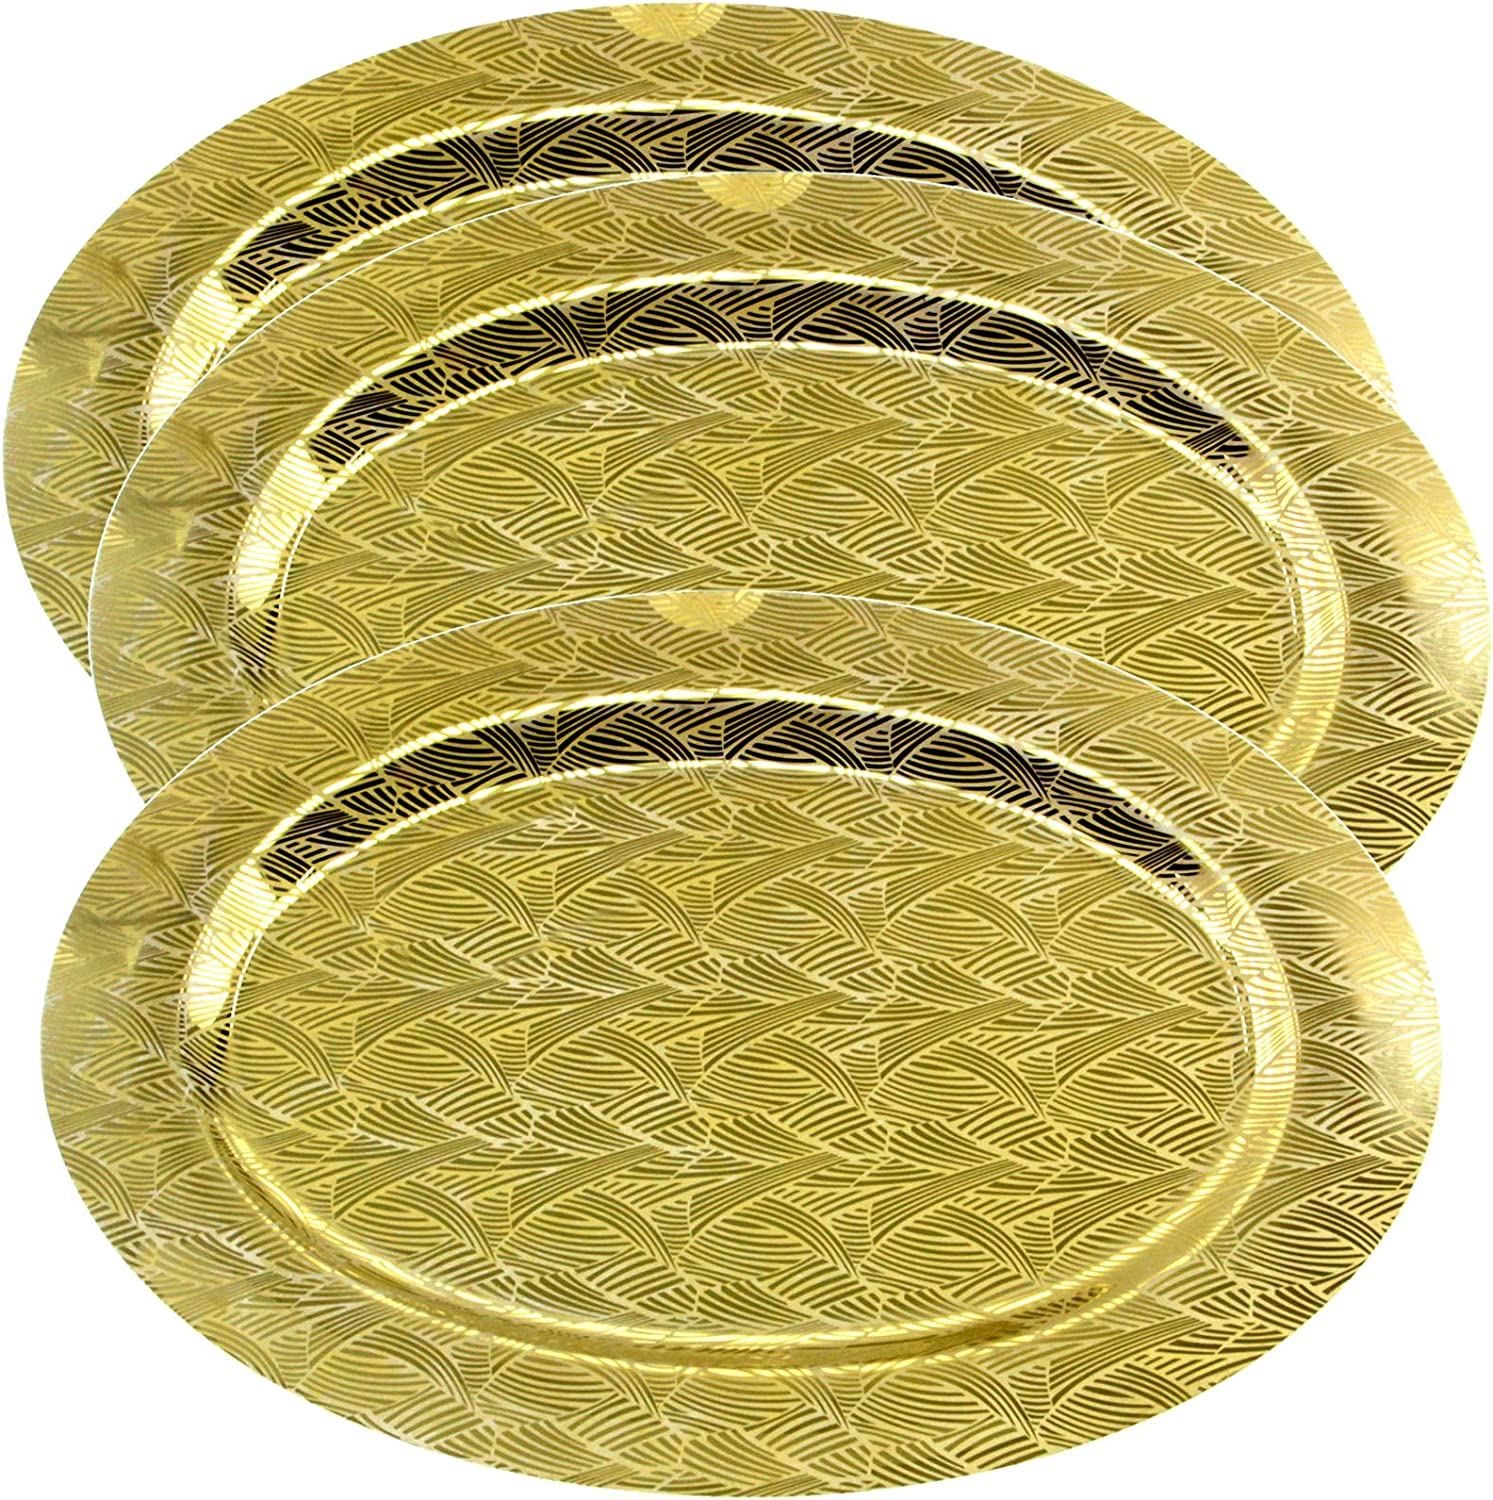 Maro Megastore (Pack of 3) 18.7 inch x 13.2 inch Oval Iron Gold Plated Serving Tray Floor Pattern Floral Edge Decorative Party Birthday Wedding Dessert Buffet Candle Decor Platter Plate Dish TLA-363